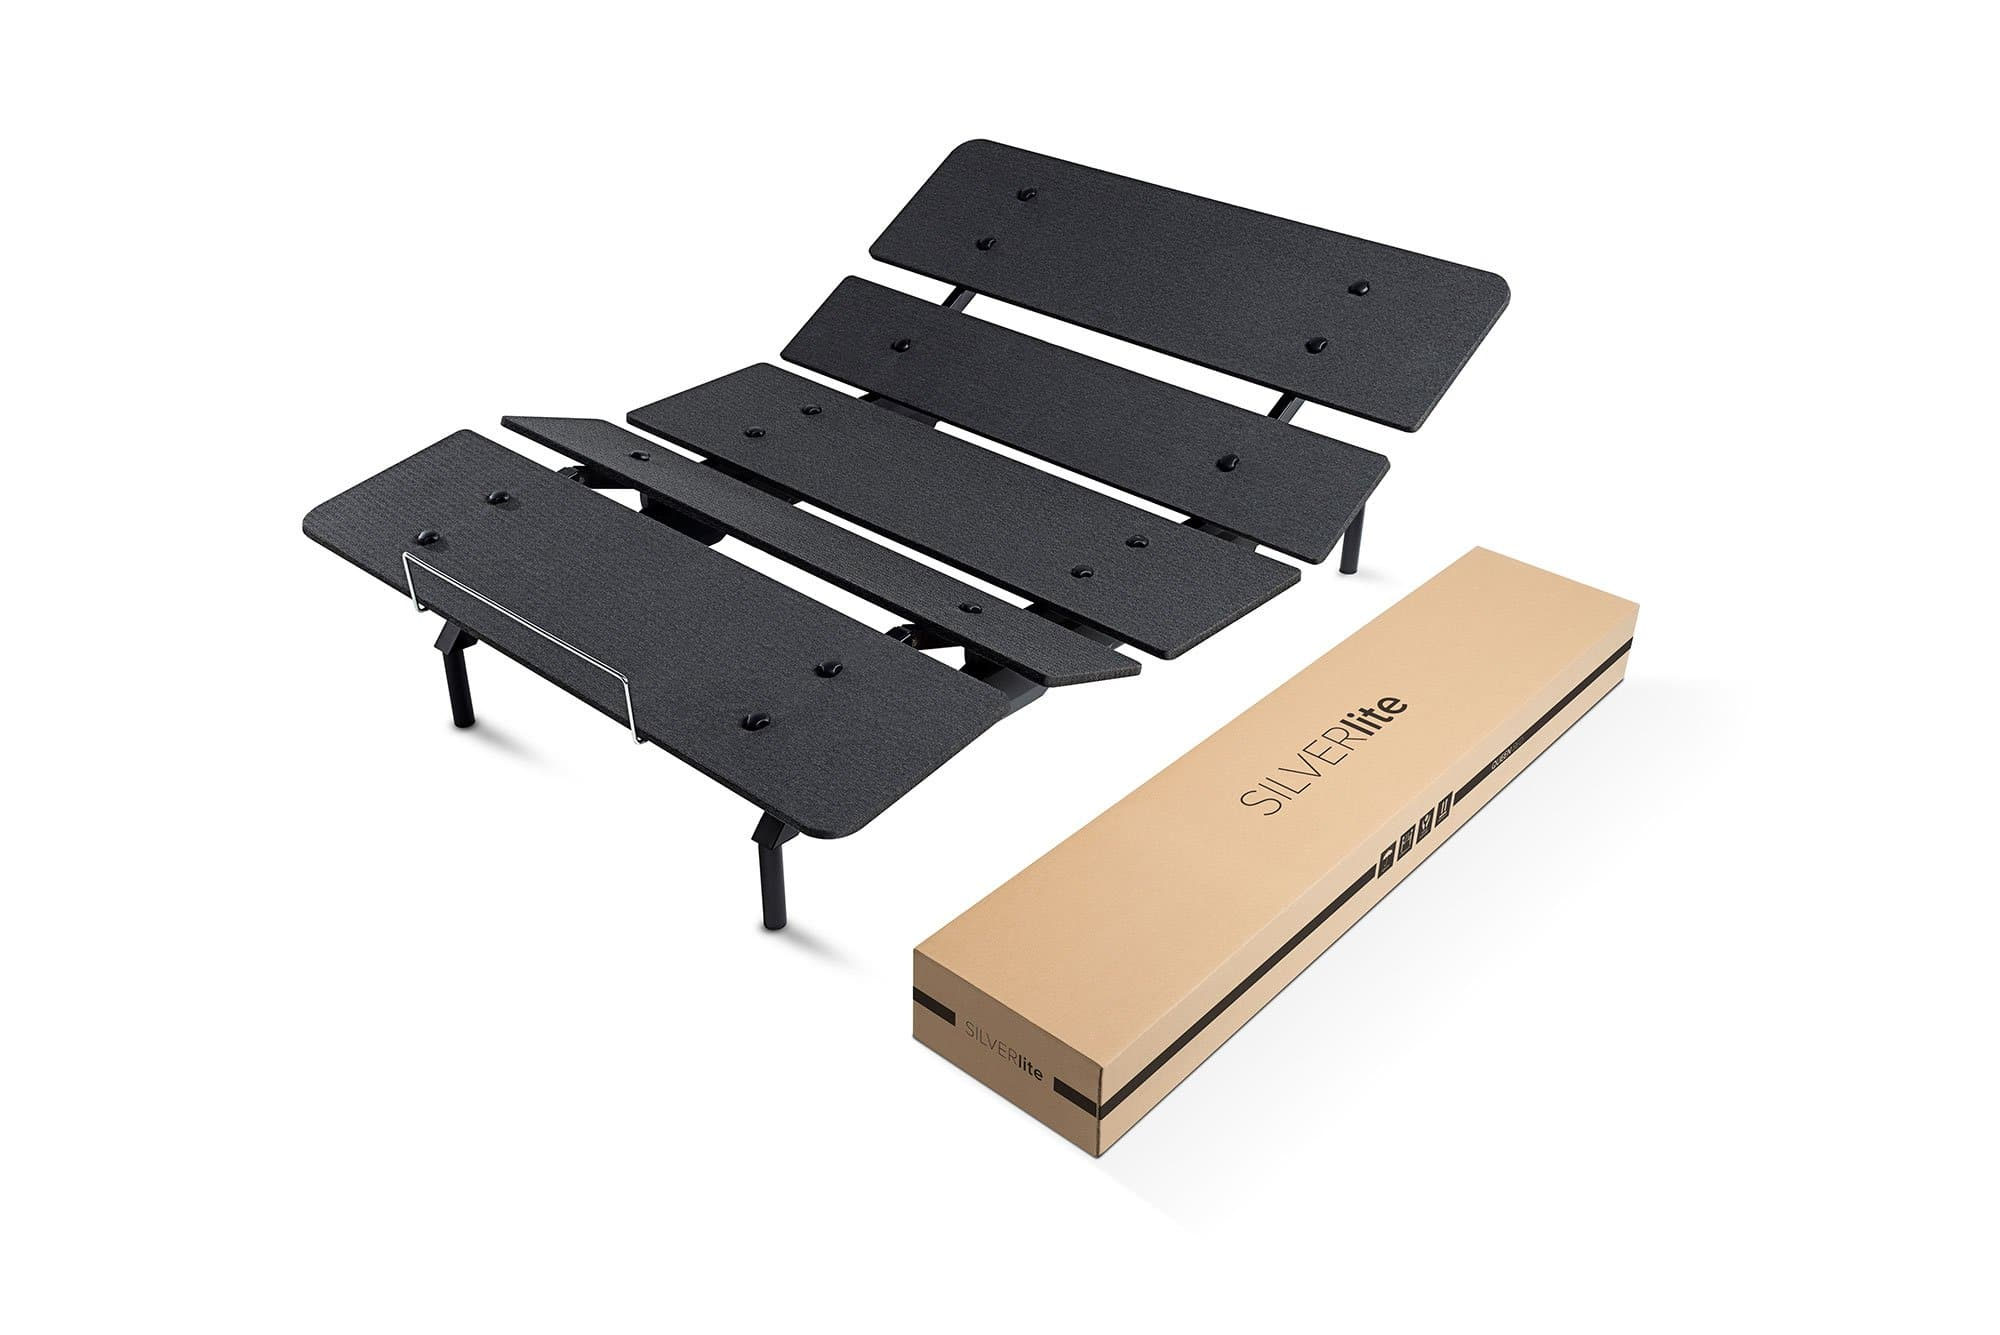 Try Any Mattress of Your Choice RISK-FREE @ Home W/ Free Delivery SILVERlite_LDS_Studio_01_package Split-King Adjustable Beds Review